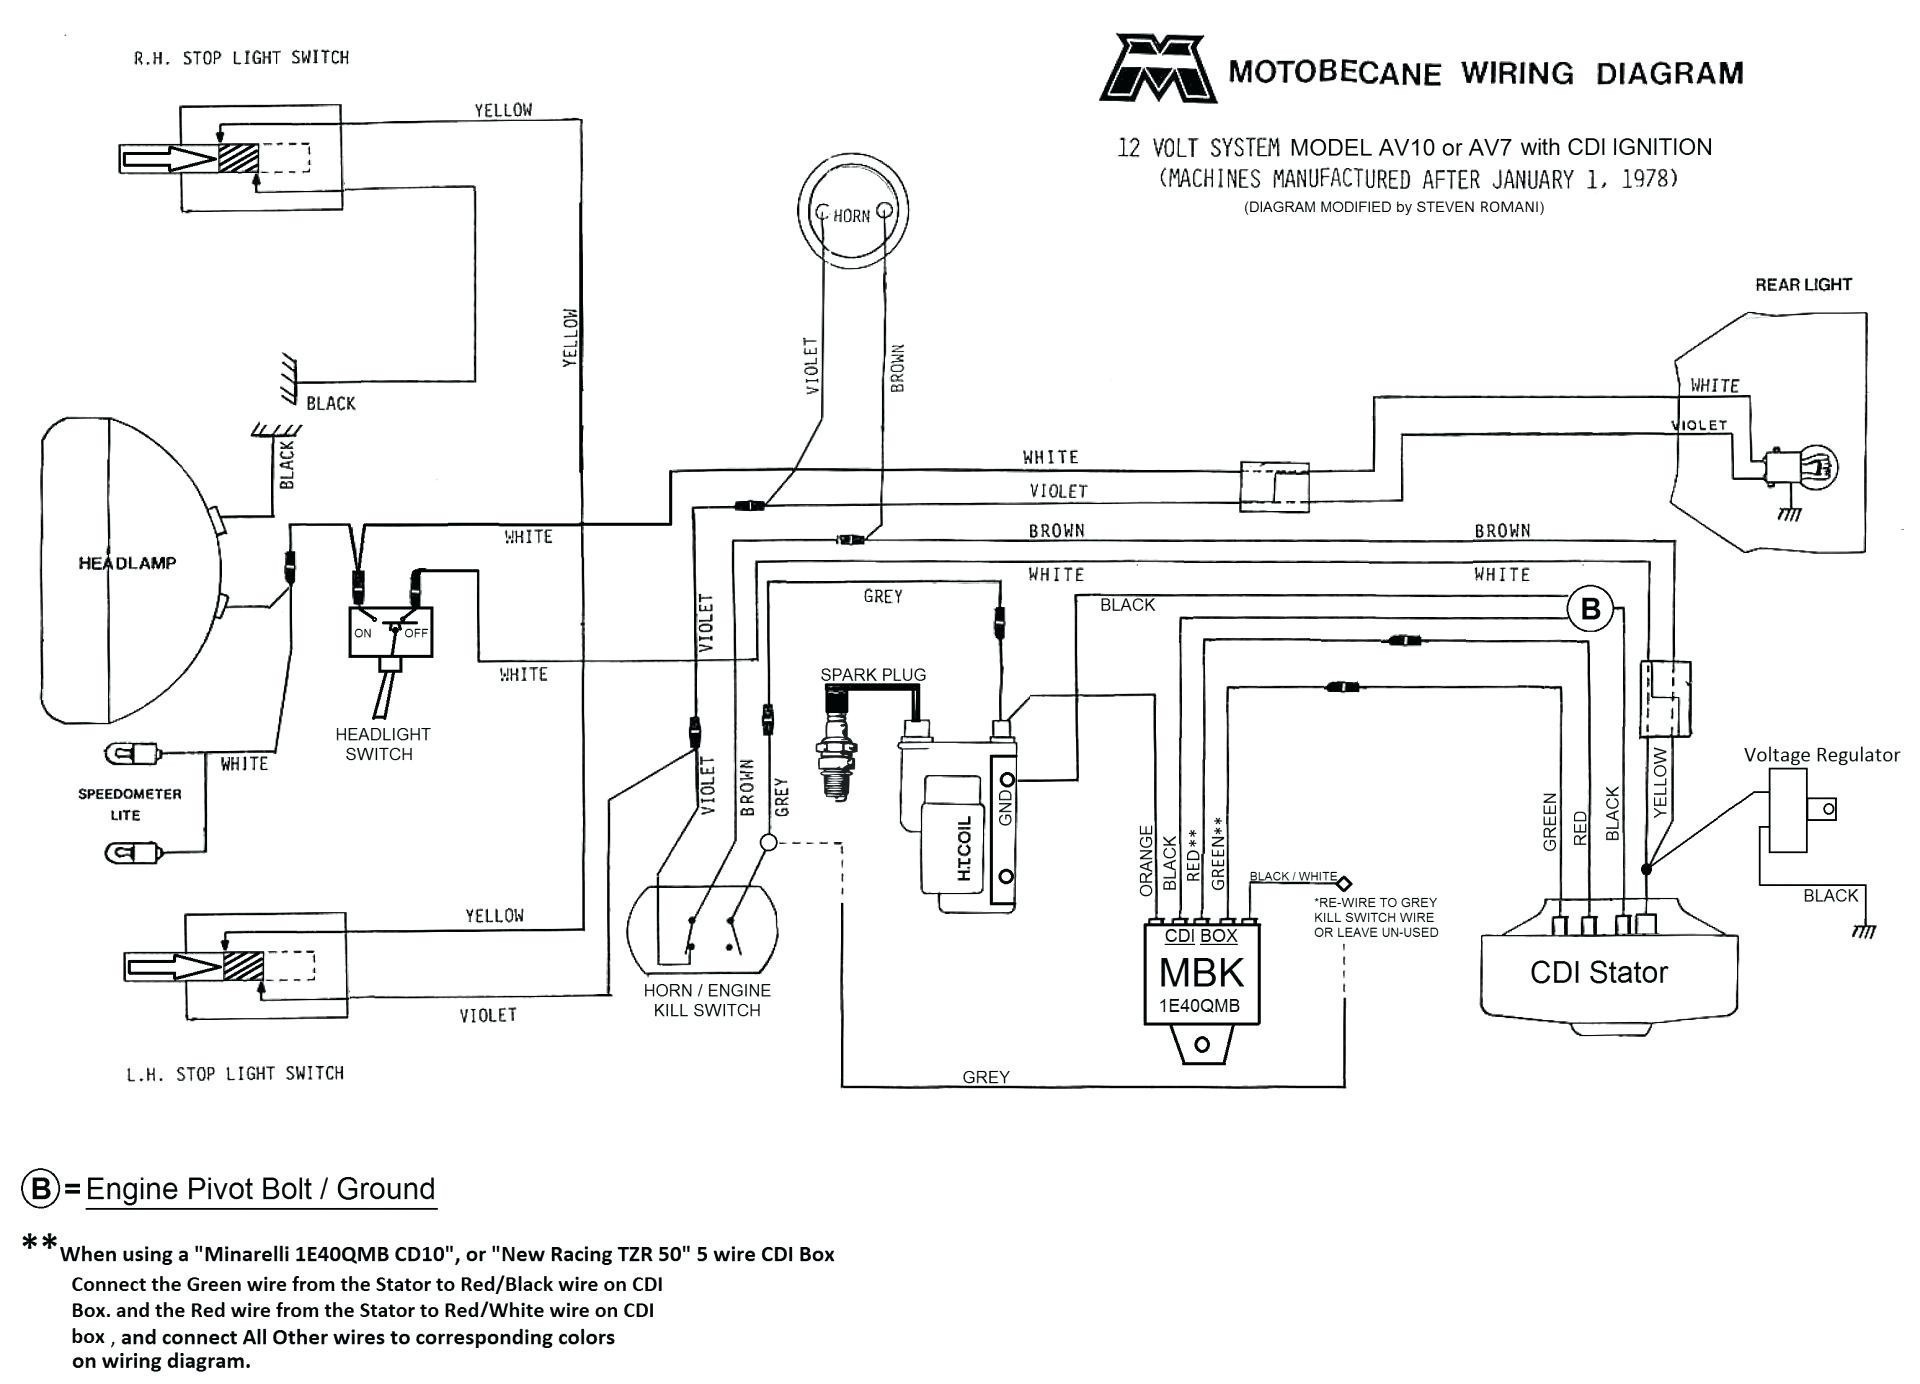 [DIAGRAM_0HG]  2002 Ez Go Golf Cart Wiring Diagram 95 Dakota Speed Sensor Wiring Diagram -  shuffle.the-damboel-2.florimunt.fr | Wiring Diagram For Gas Golf Cart |  | shuffle.the-damboel-2.florimunt.fr